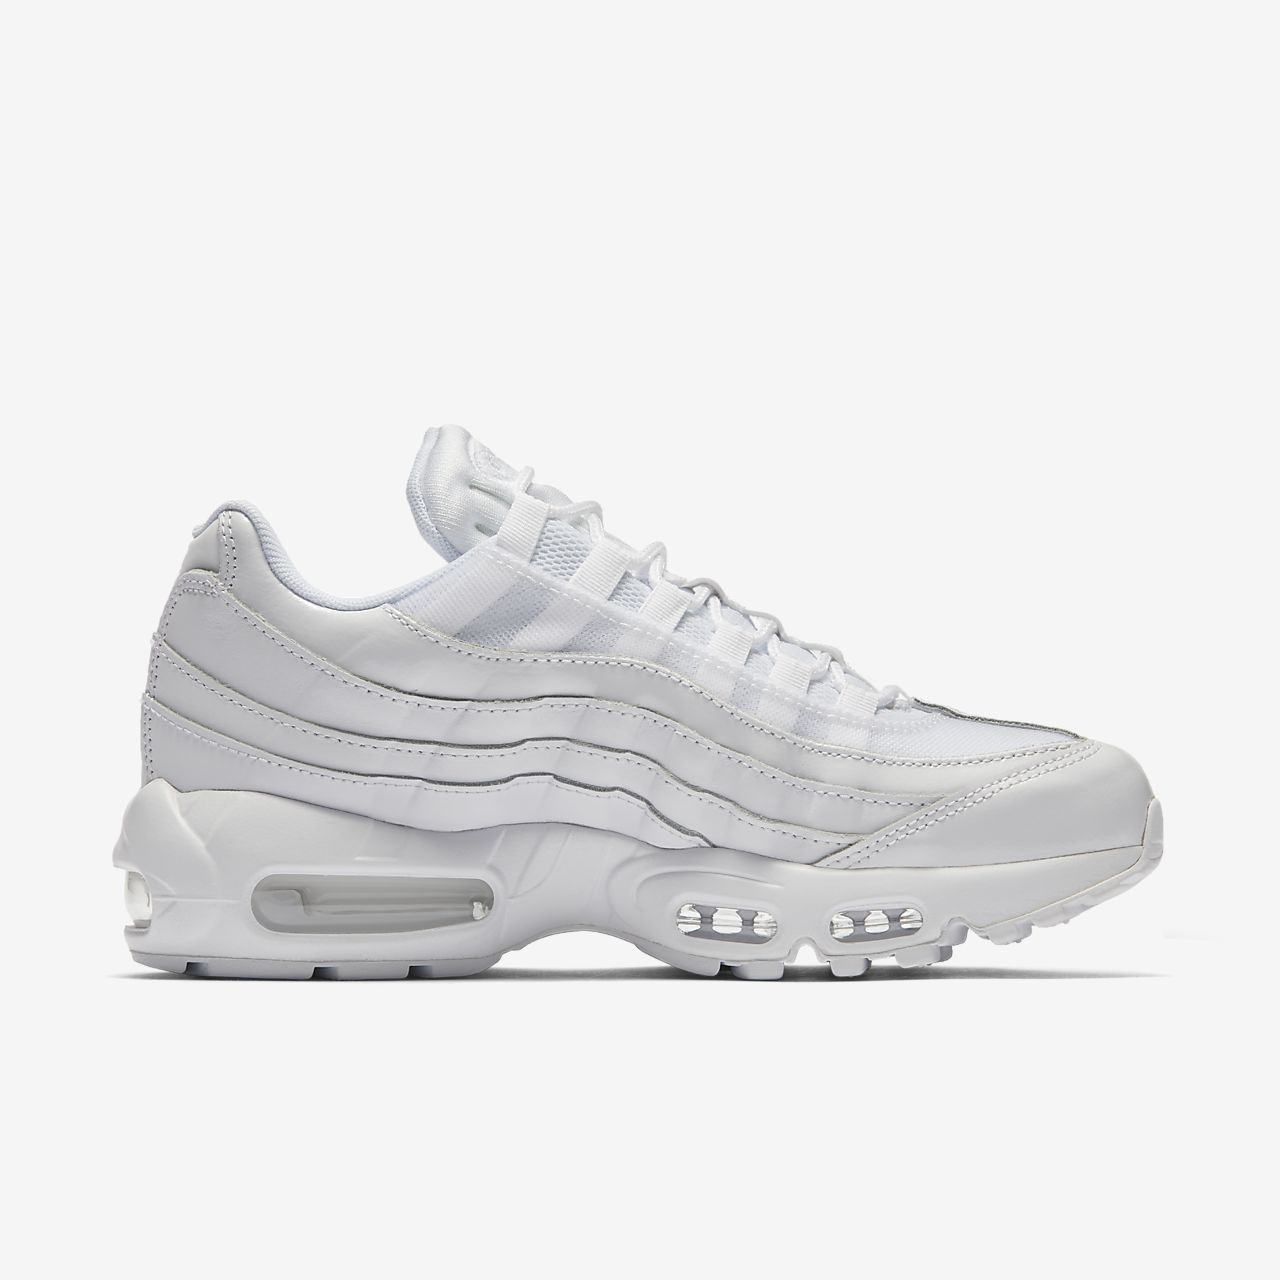 official photos 389e2 3d42d ... Nike Air Max 95 Women s Shoe